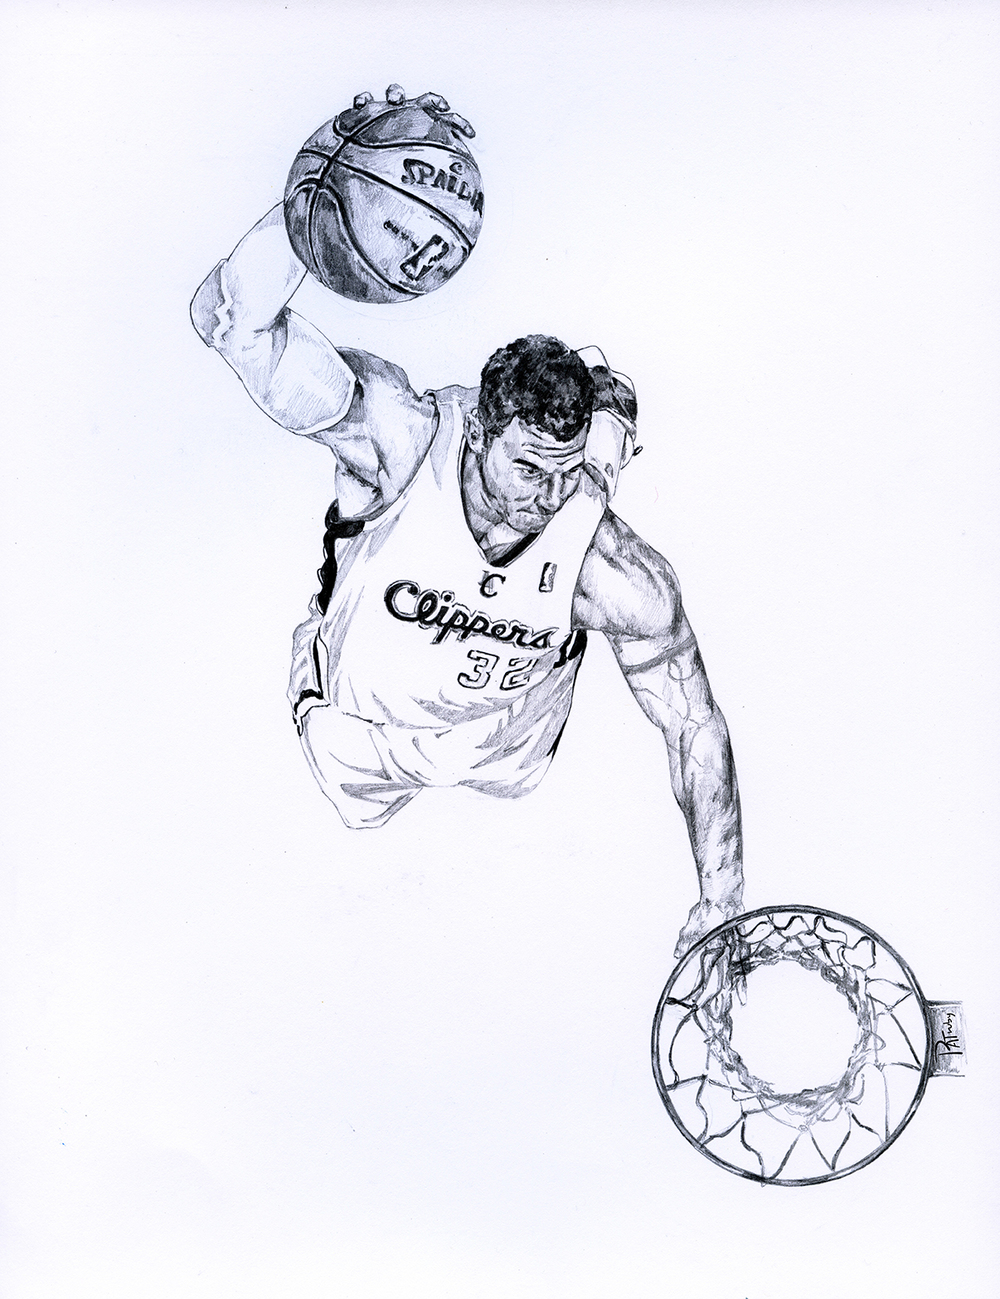 Blake griffin of the los angeles clippers buy prints here